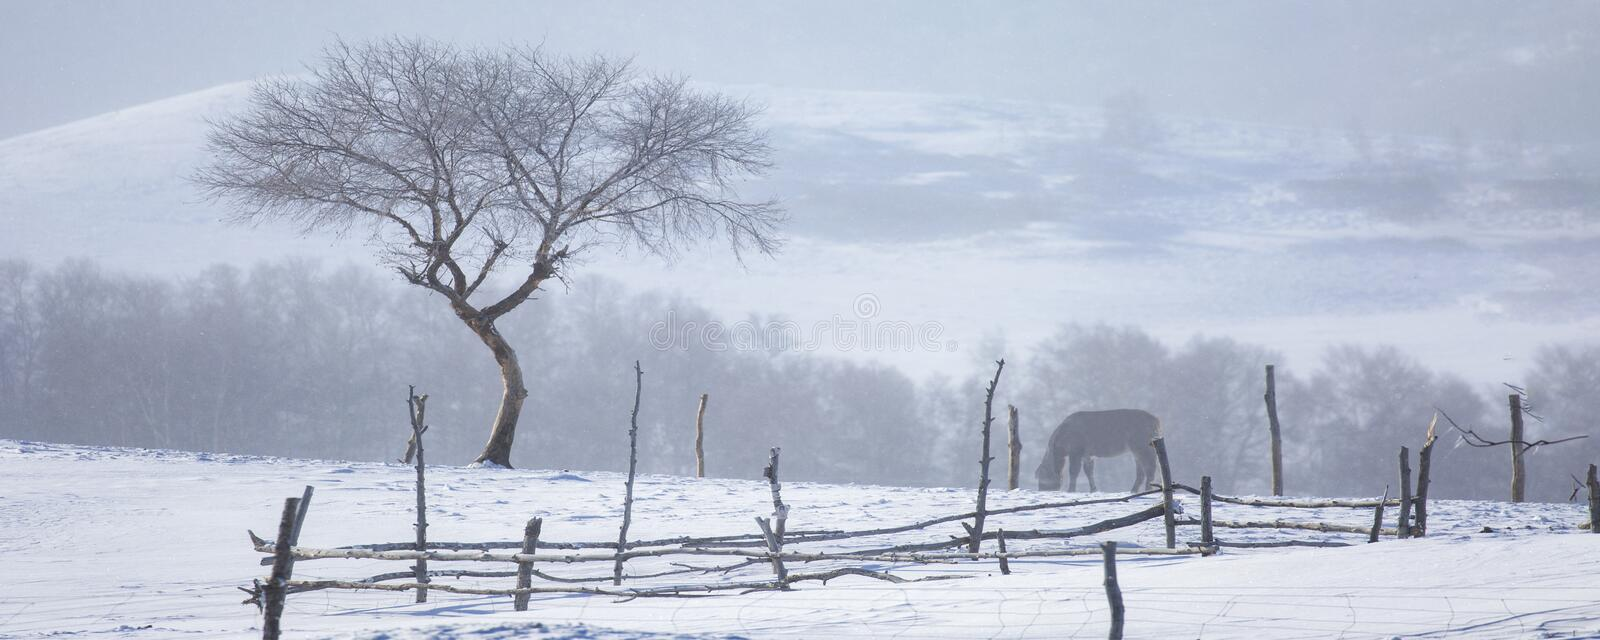 The tree in the snow royalty free stock image